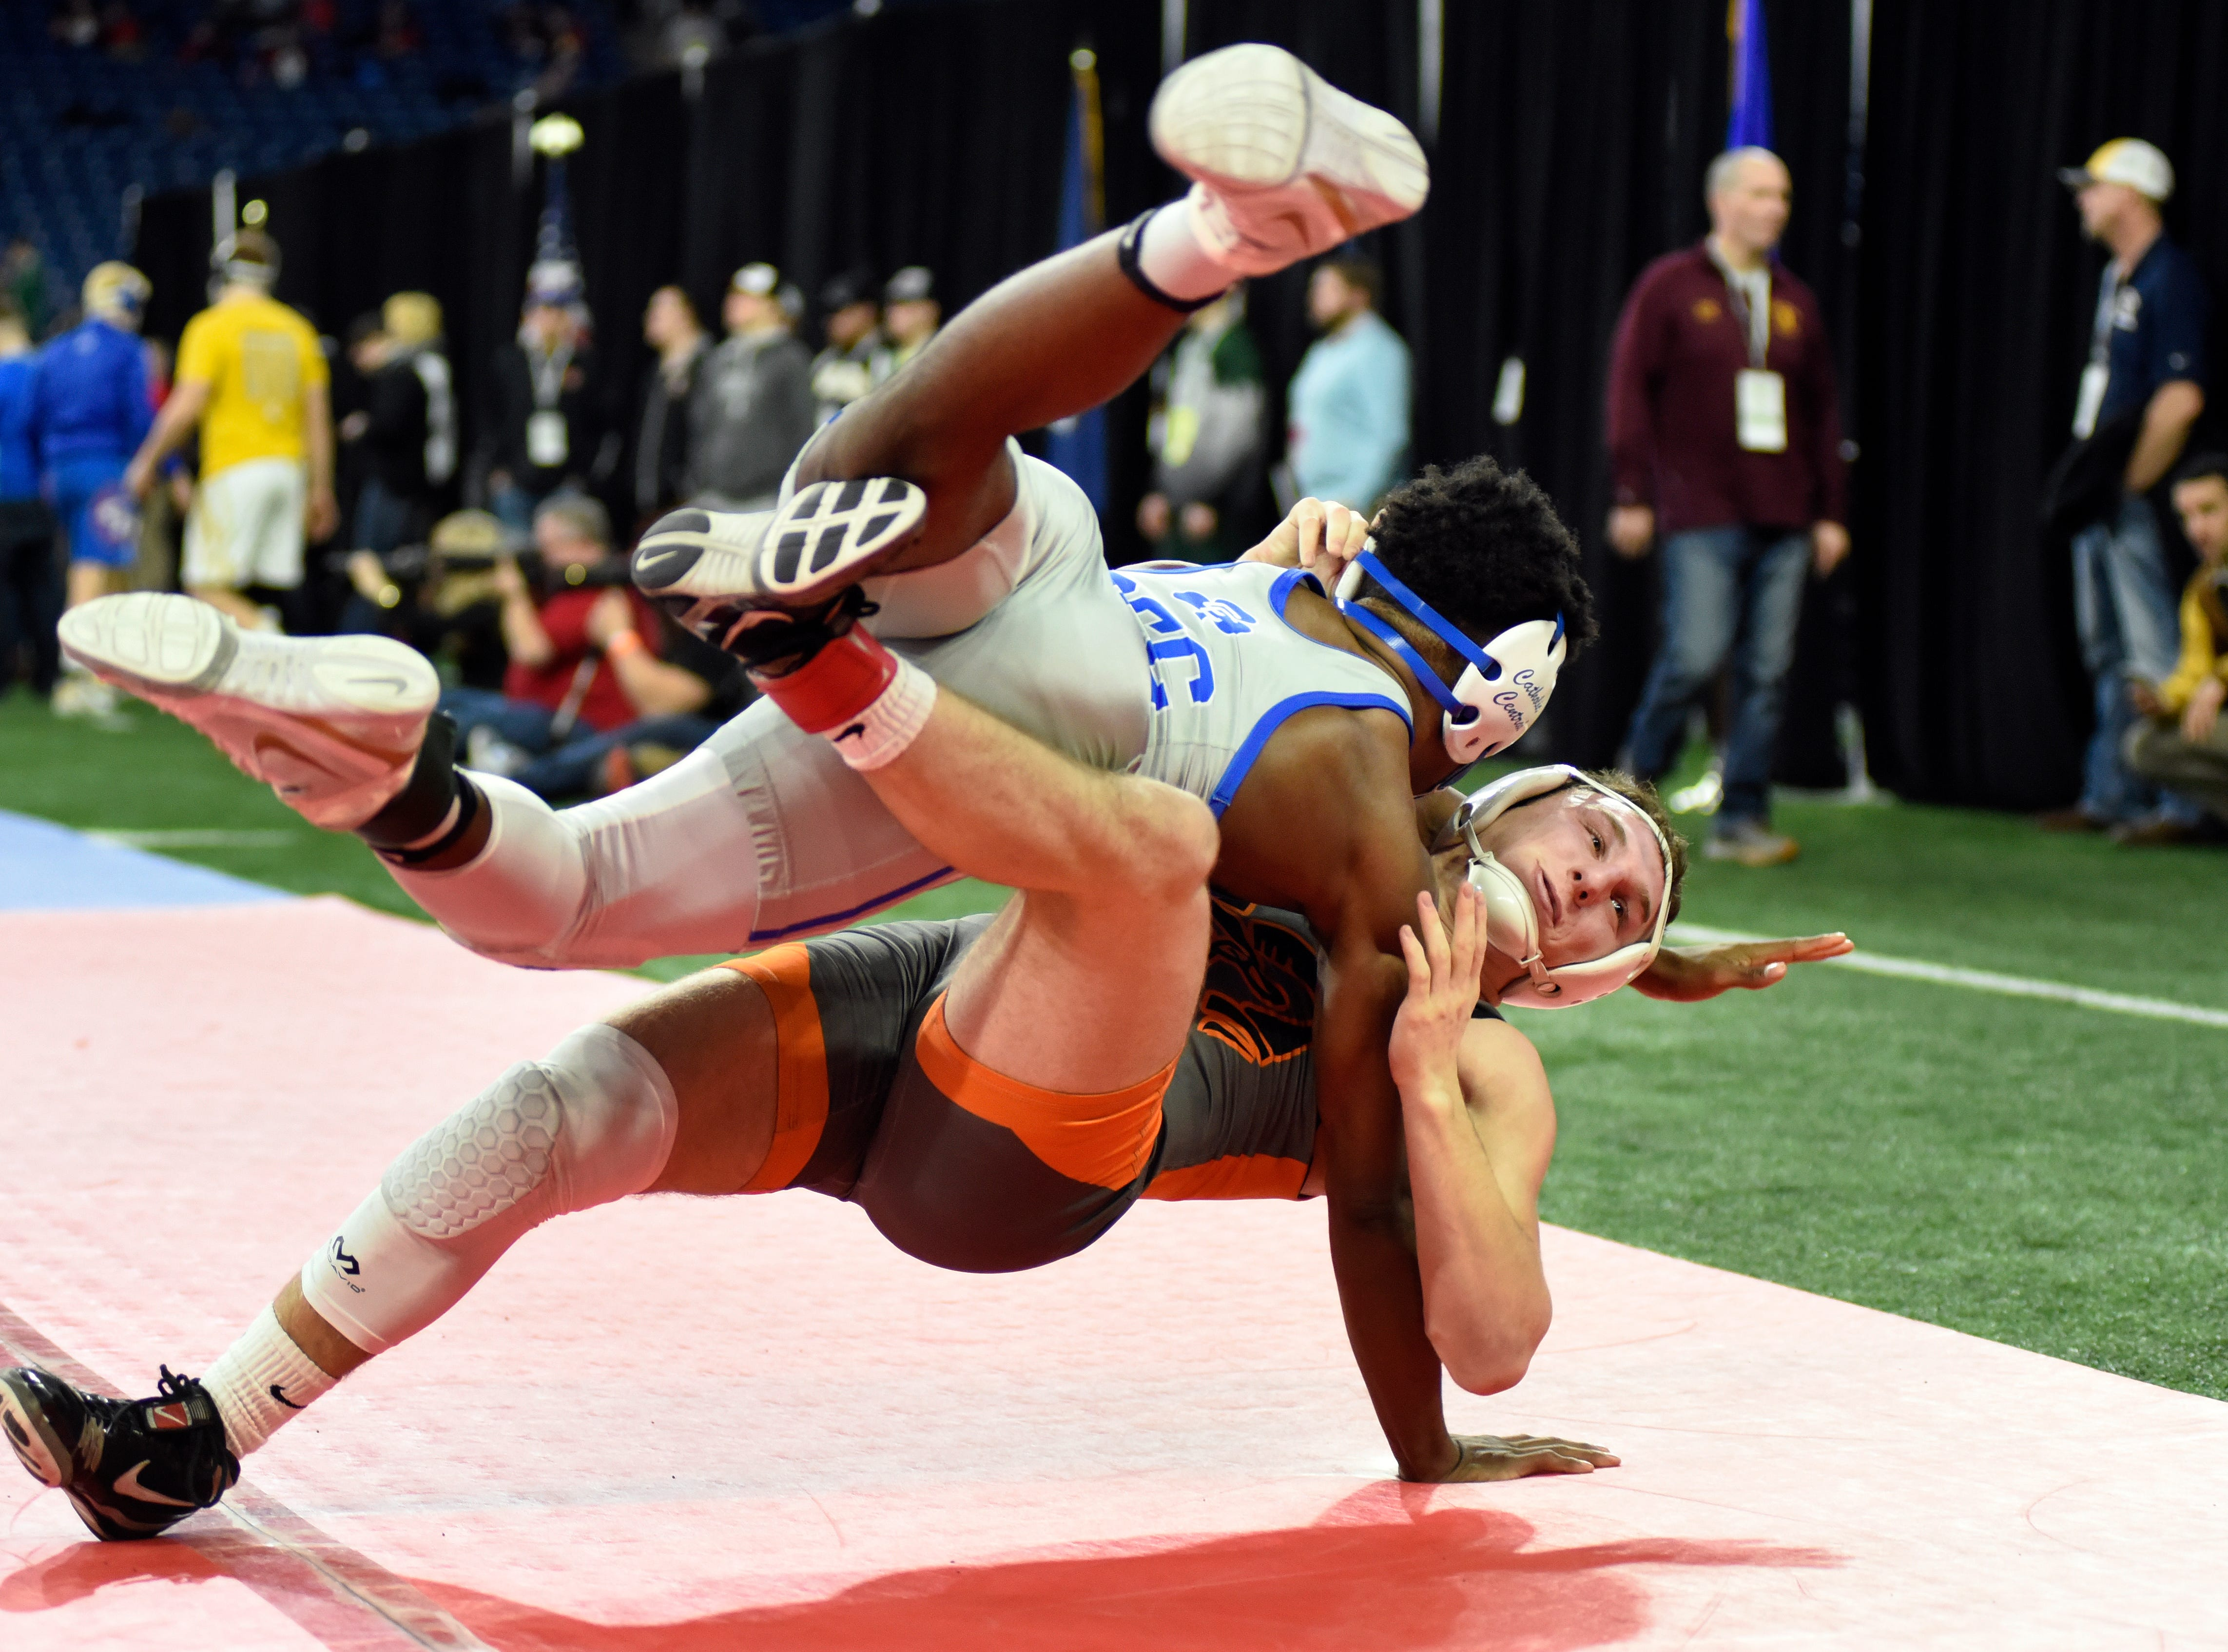 Kevon Davenport of Detroit Catholic Central, top, takes down Jack Richardson of Rockford at 145 pounds in the state quarterfinals. Davenport won by pin.